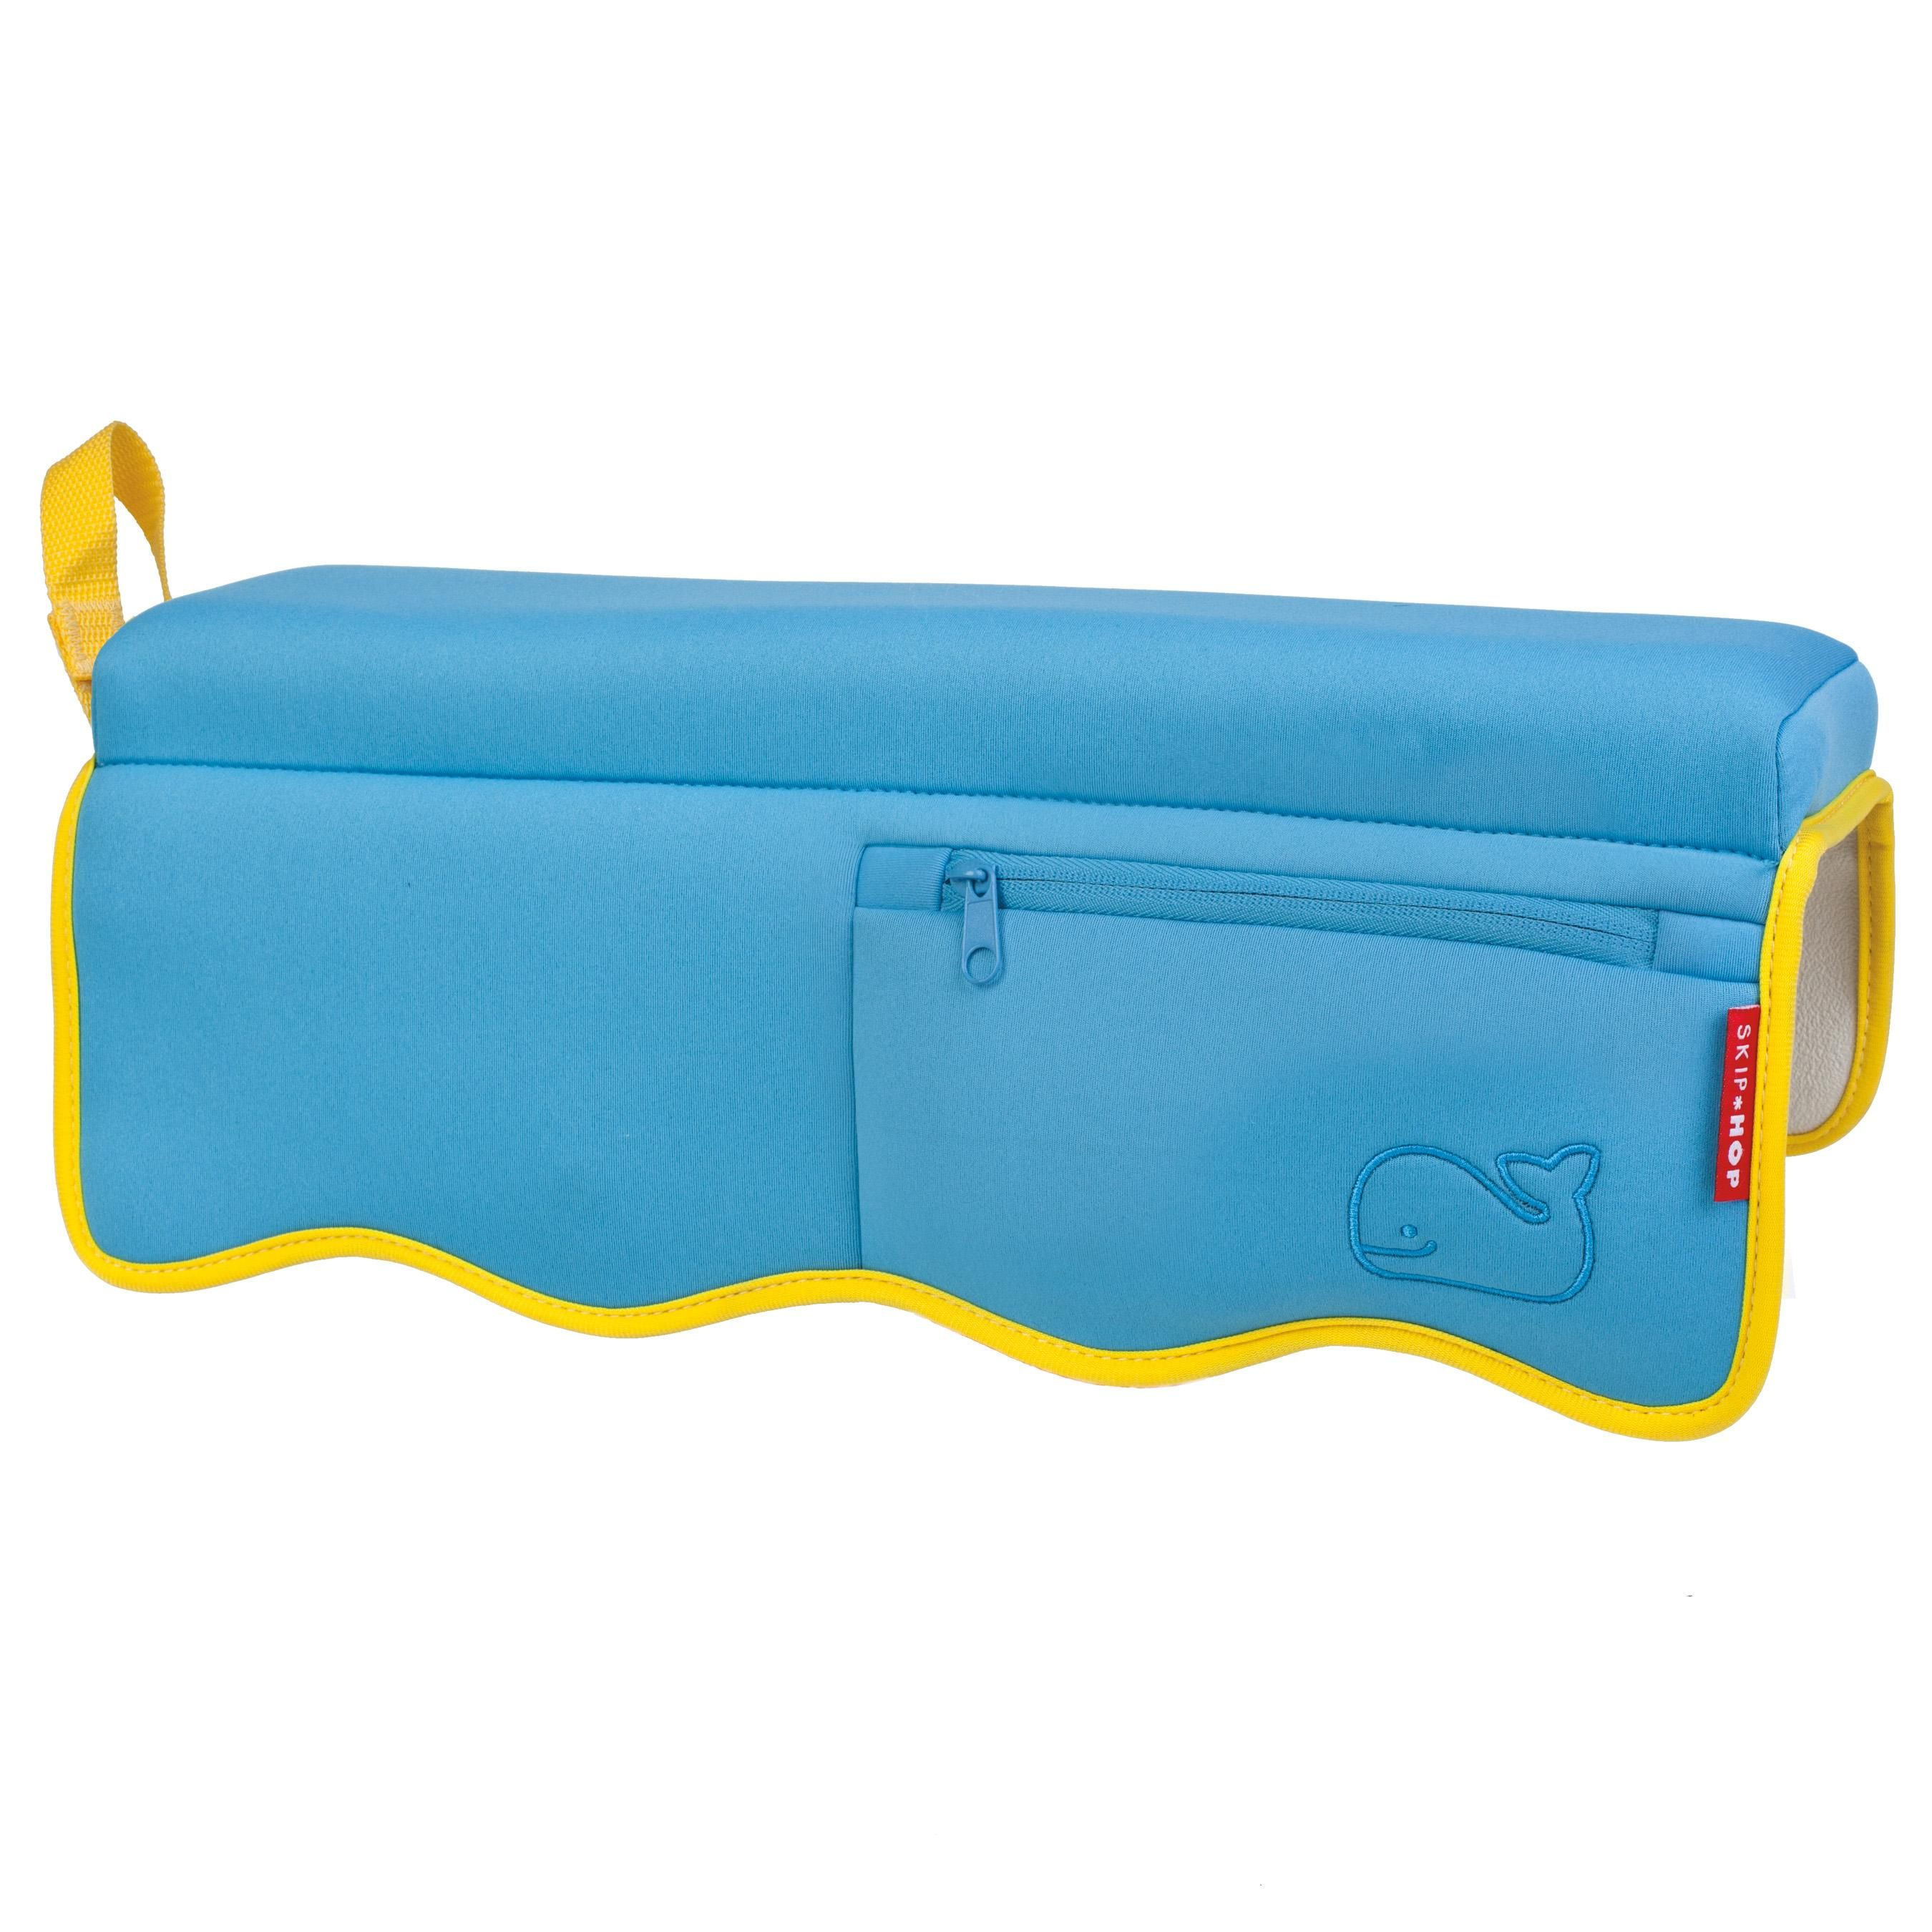 Amazon.com : Skip Hop Moby Bathtub Elbow Rest, Blue : Bathtub Side ...